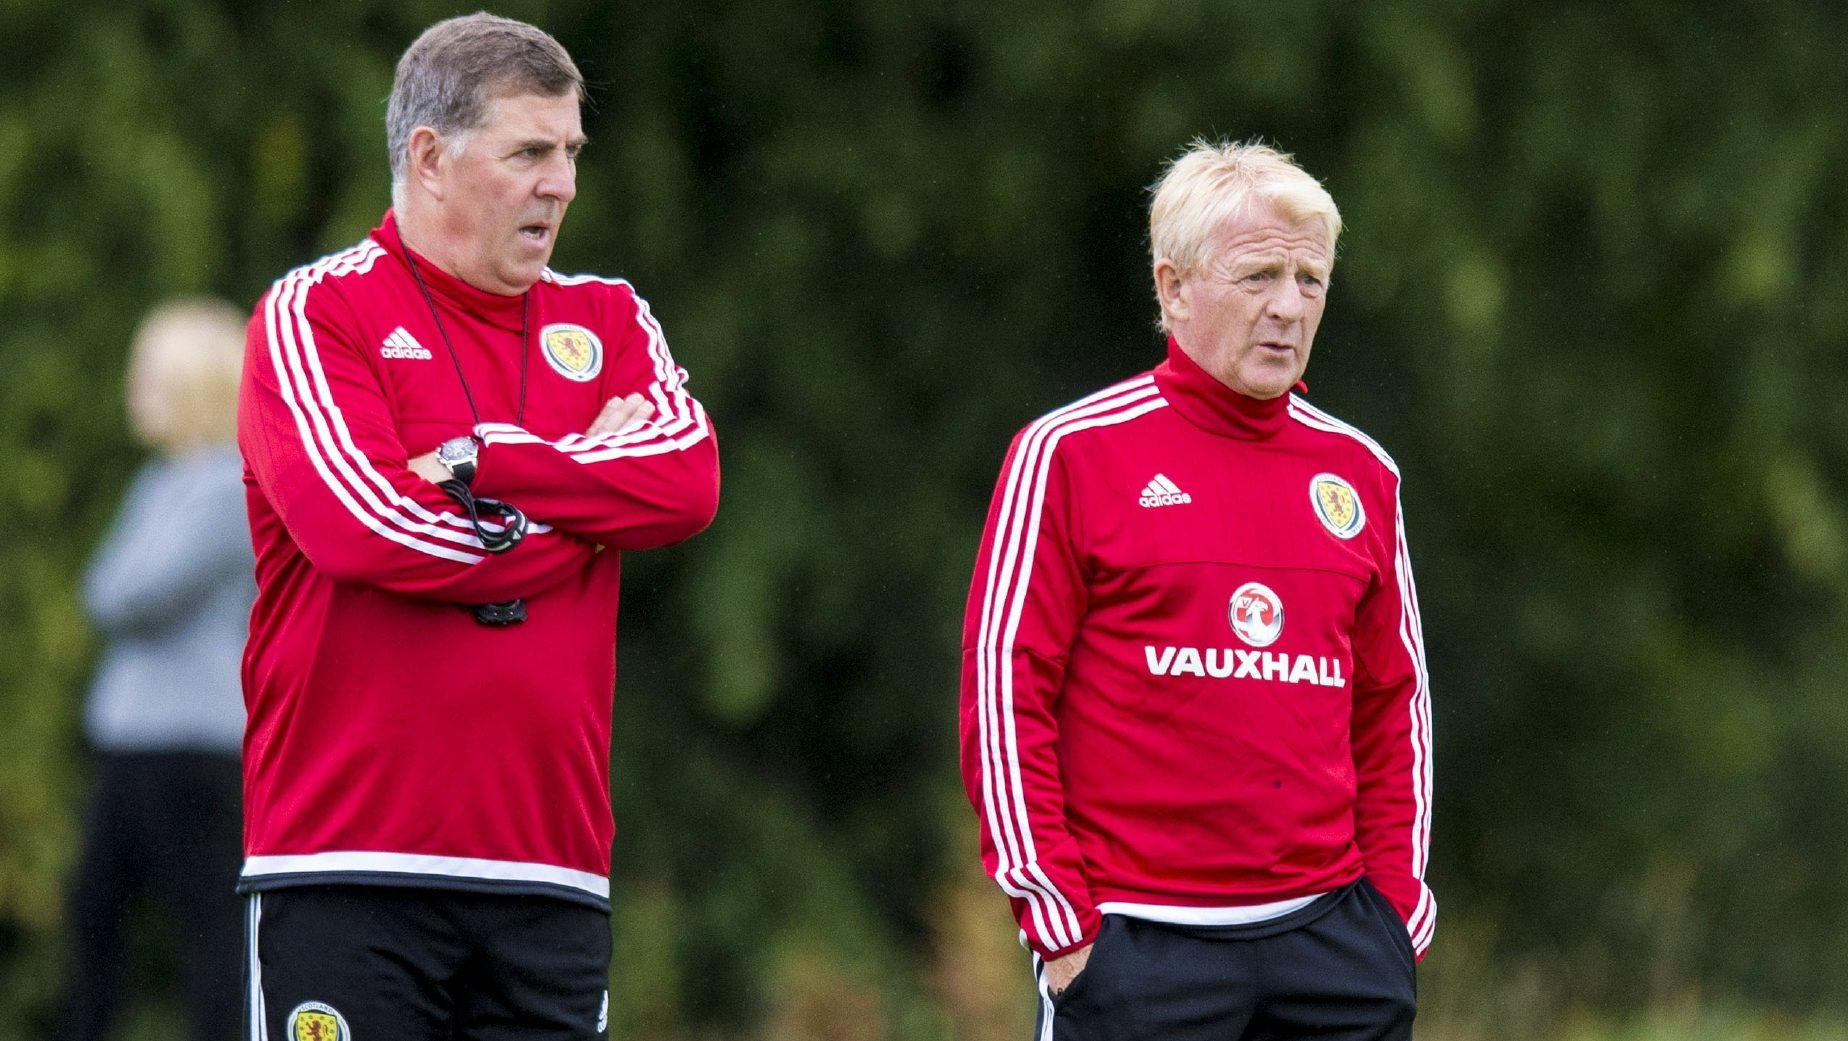 Mark McGhee and Gordon Strachan take training.